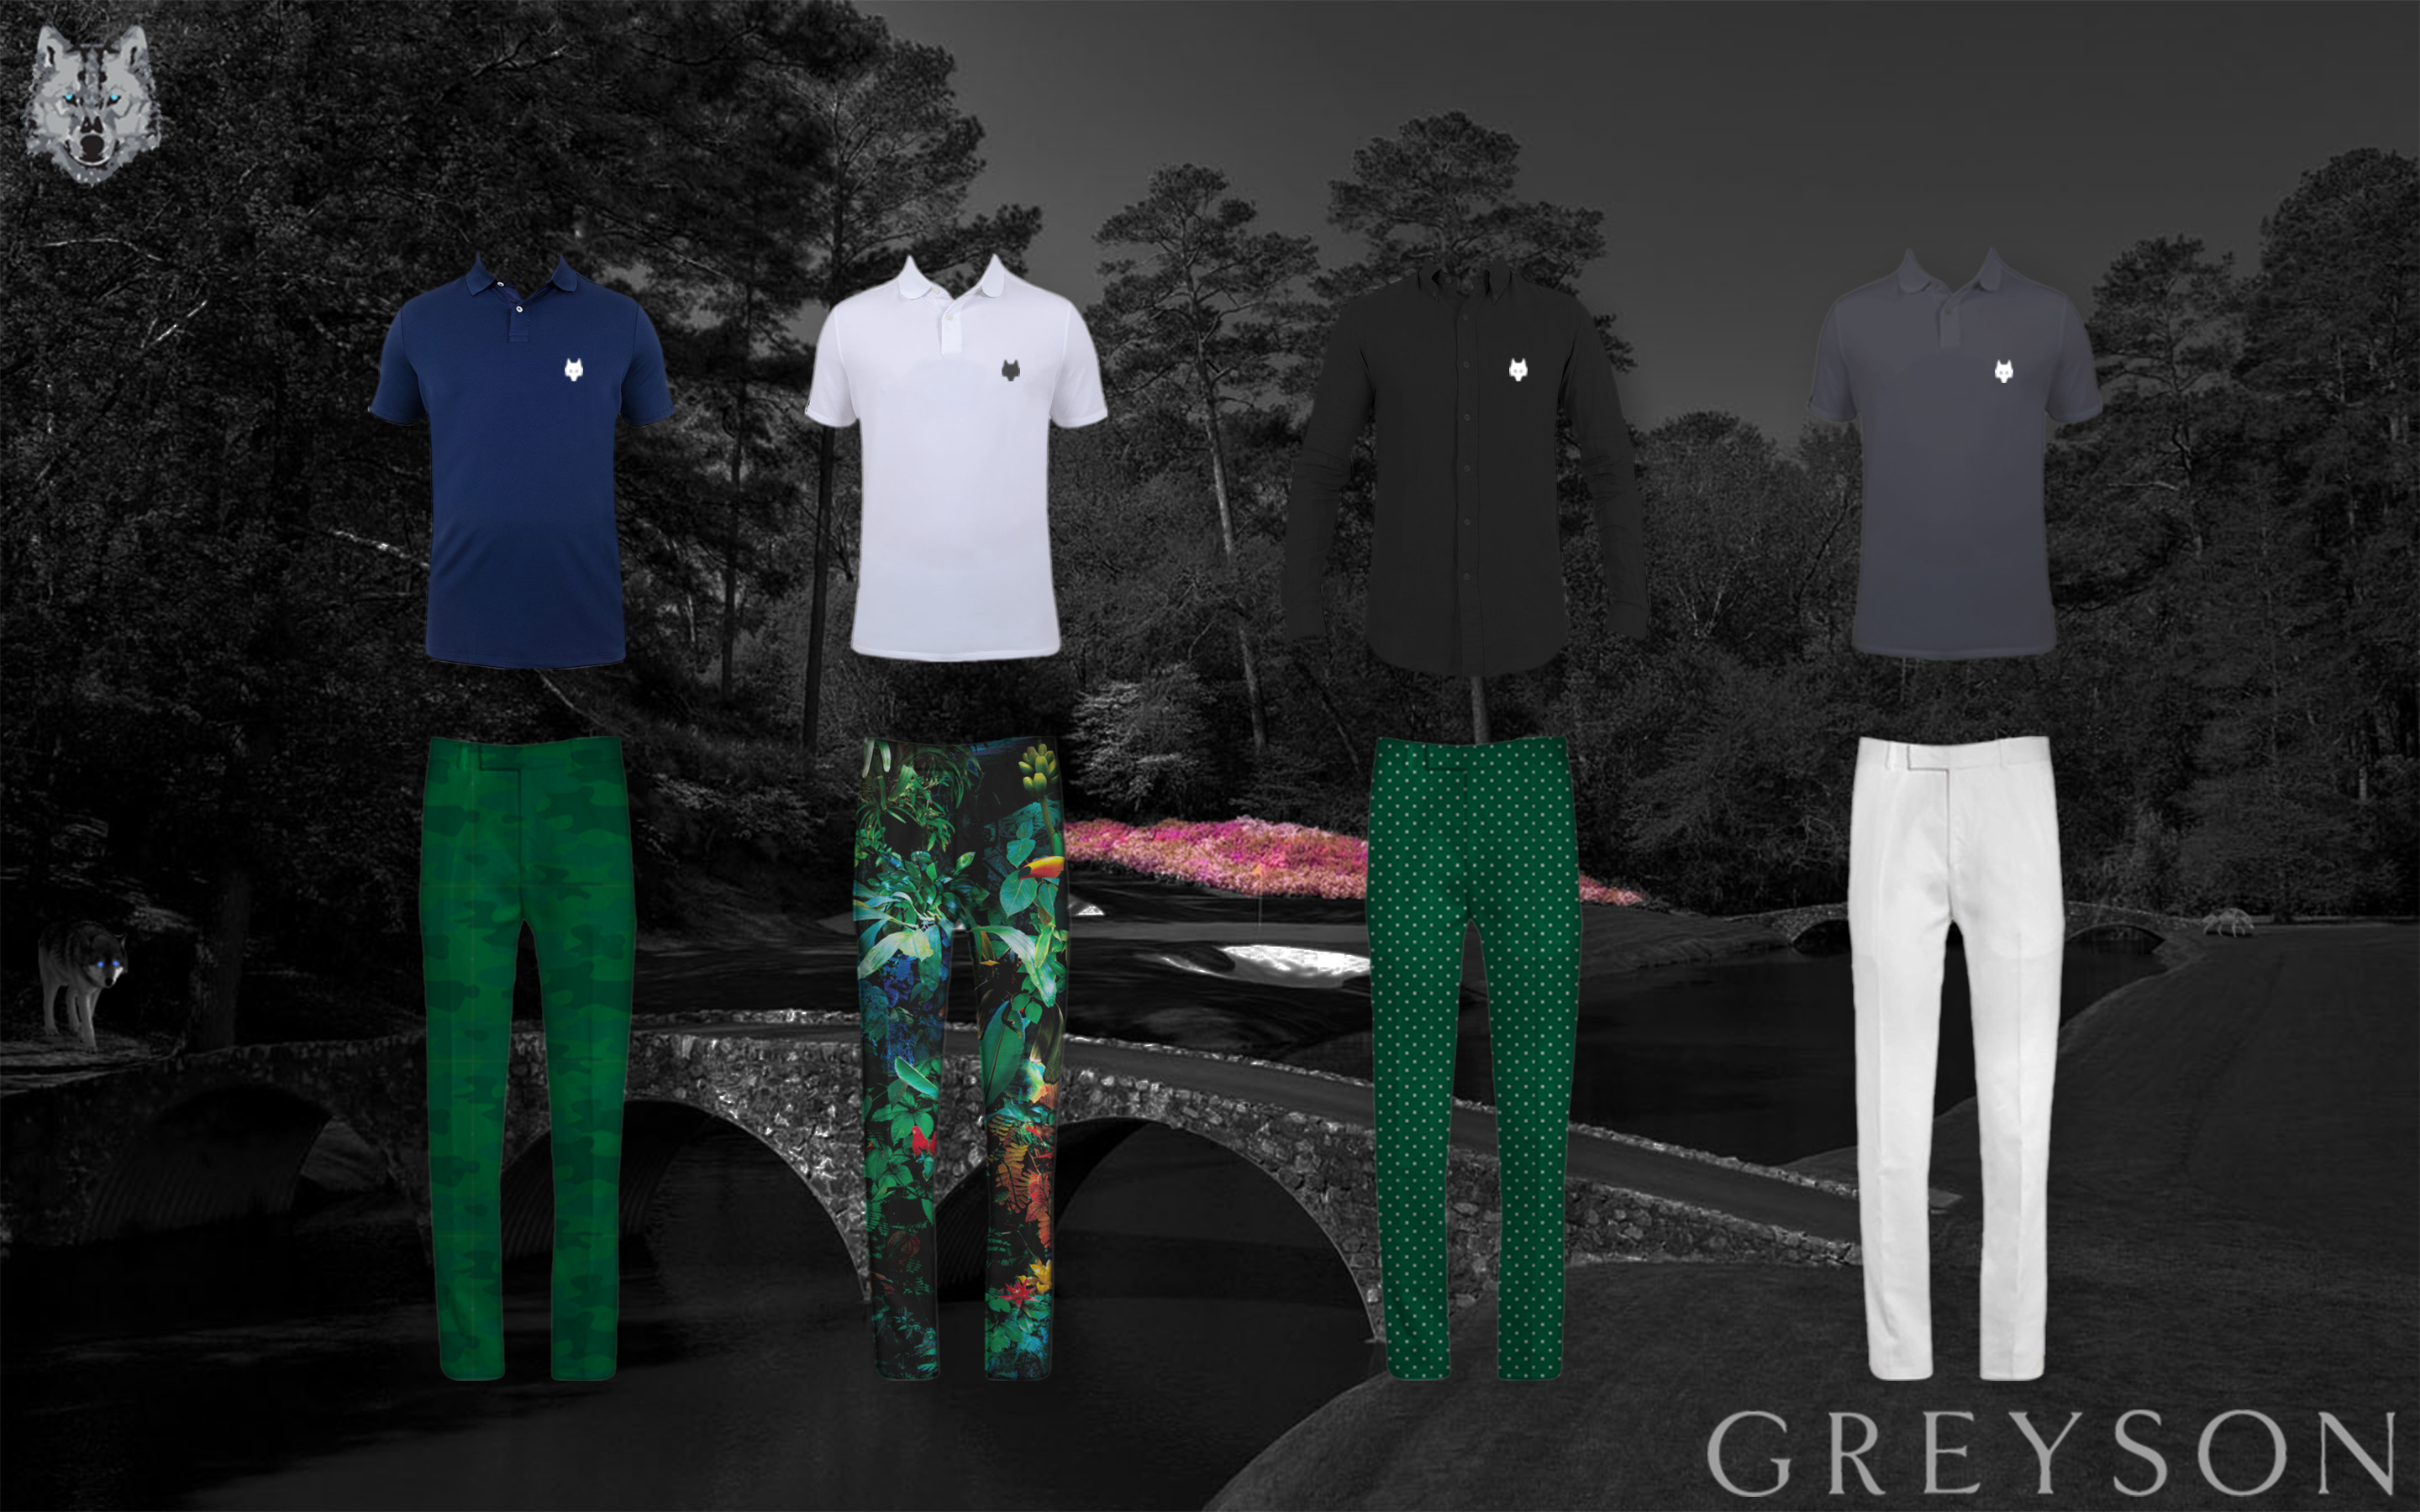 d15568327 Morgan Hoffmann, Greyson Make Bold Debuts at the Masters | GolfThreads